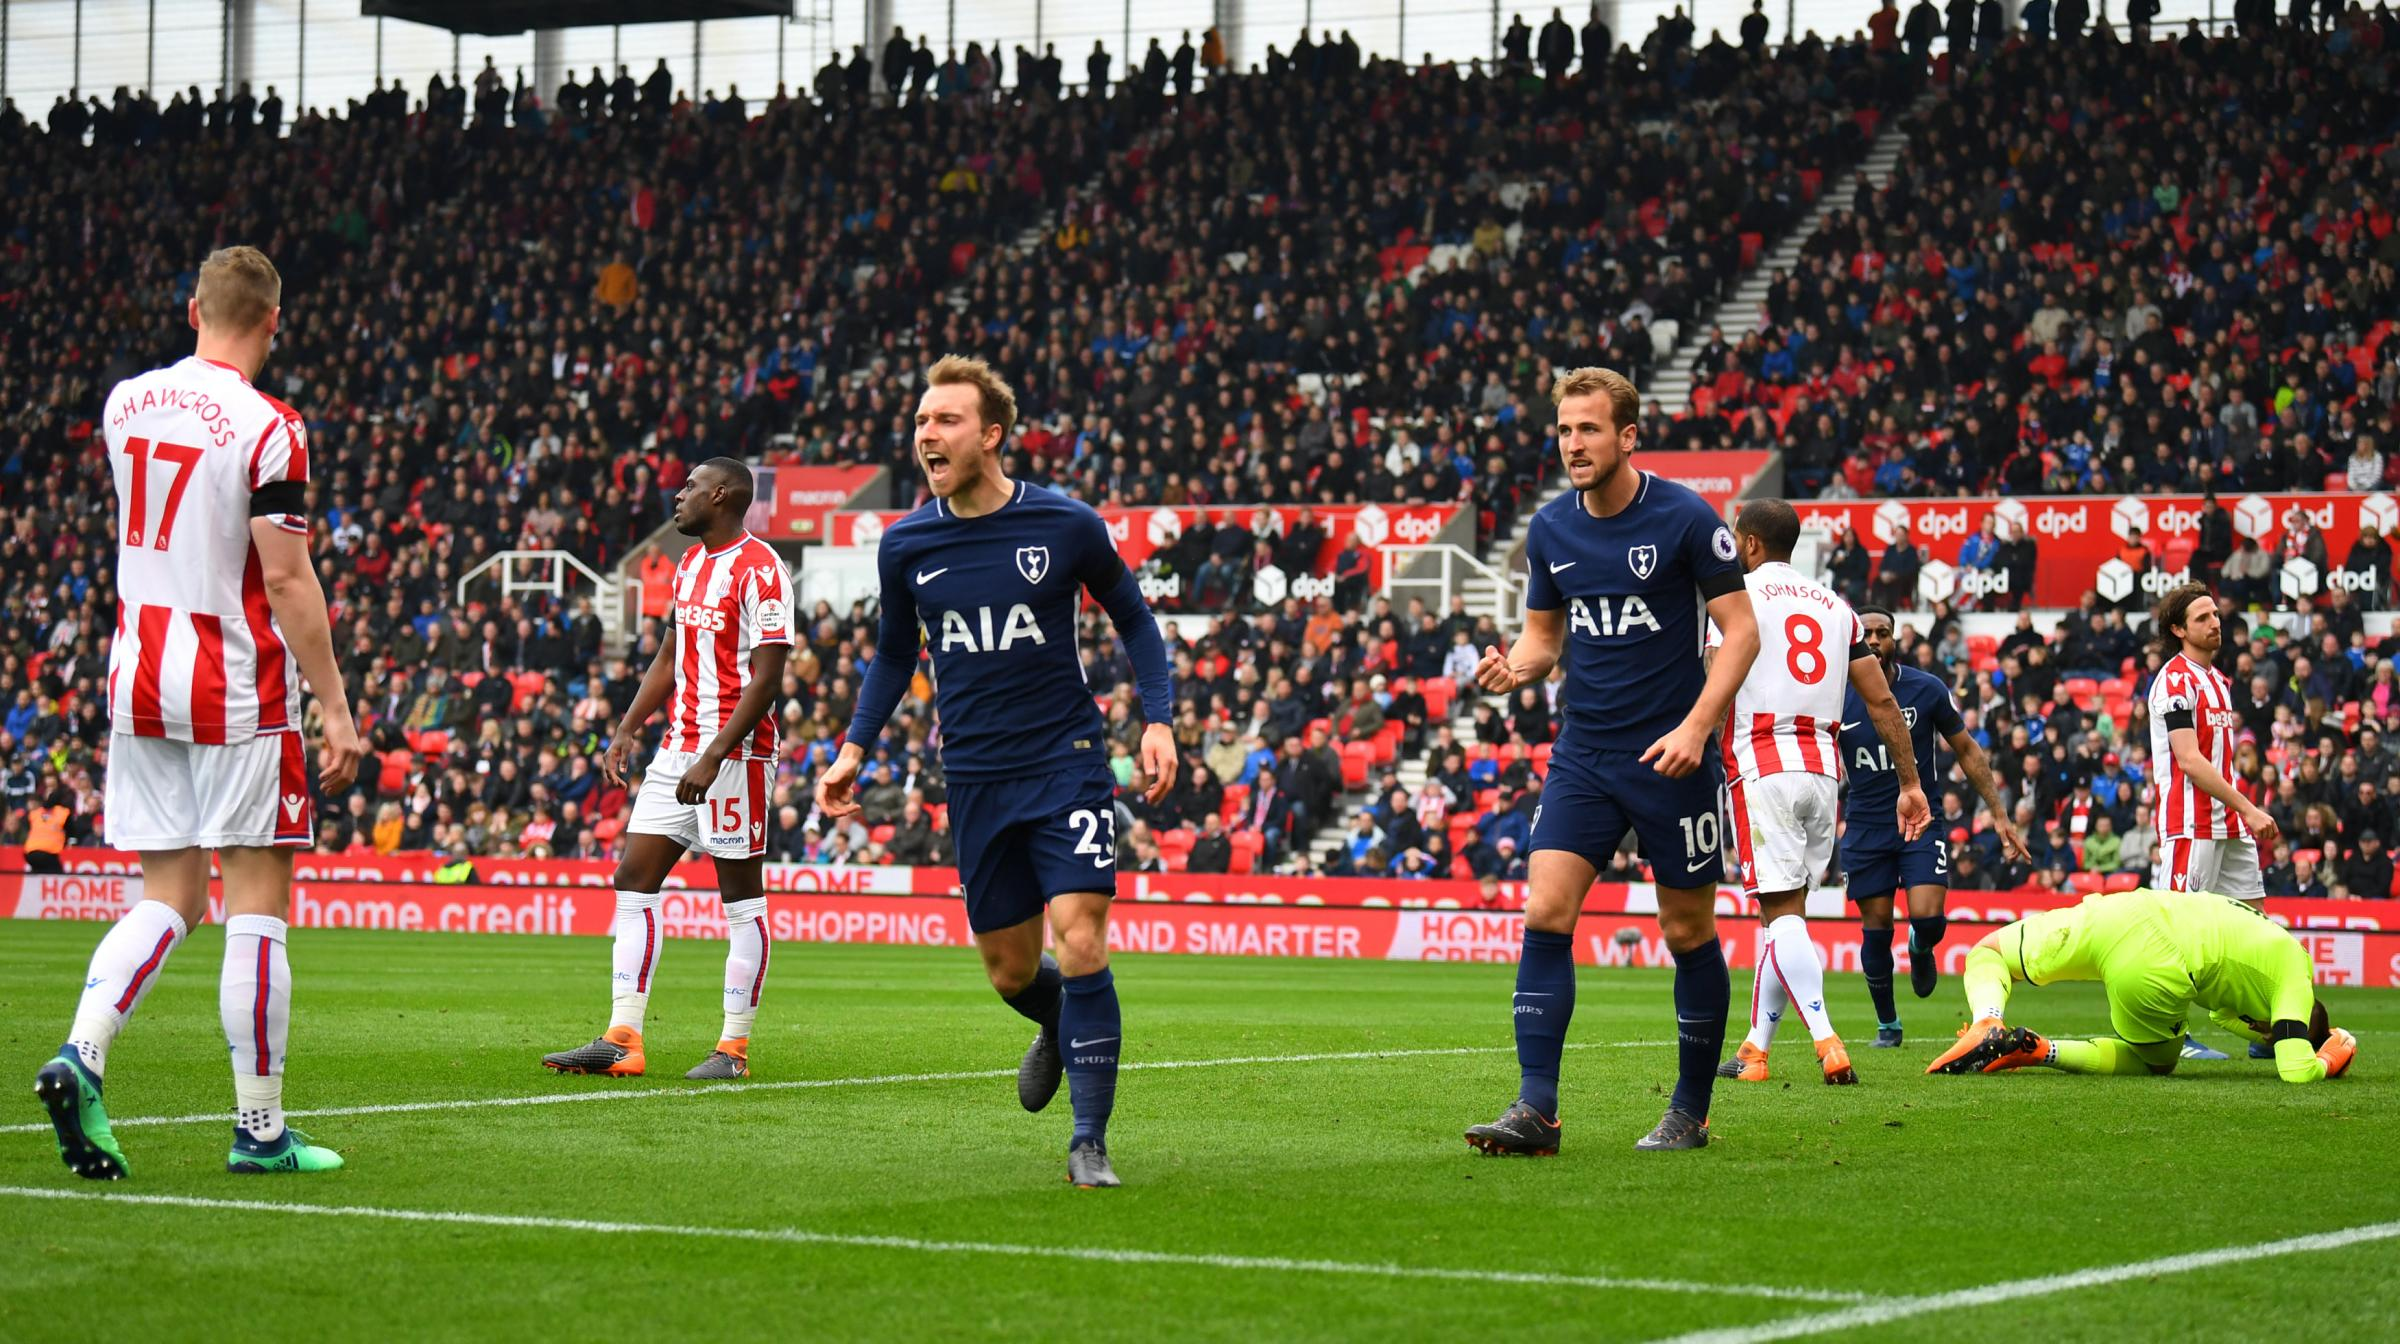 Christian Eriksen celebrates scoring Tottenham's first goal. Picture: Action Images